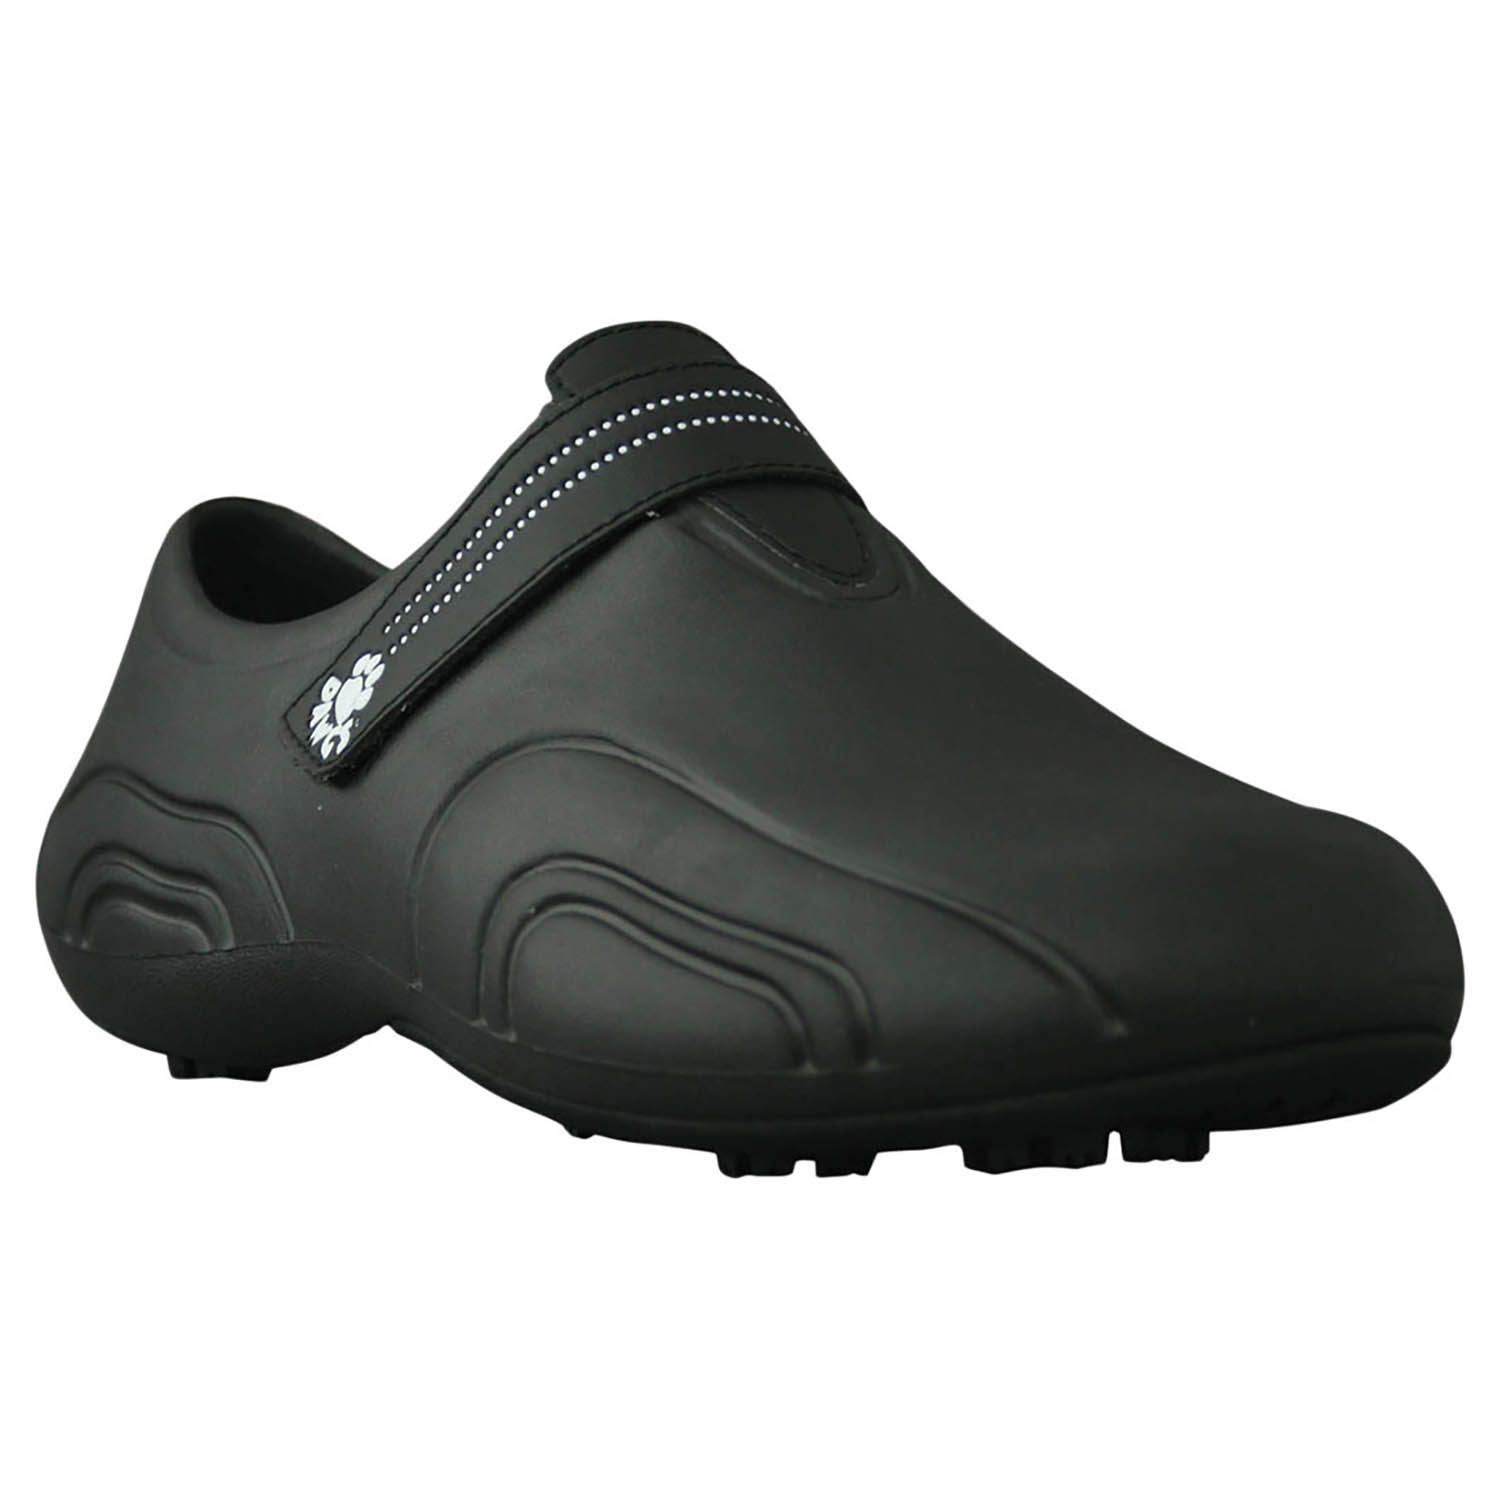 Dawgs Ultralite Golf Shoes Reviews